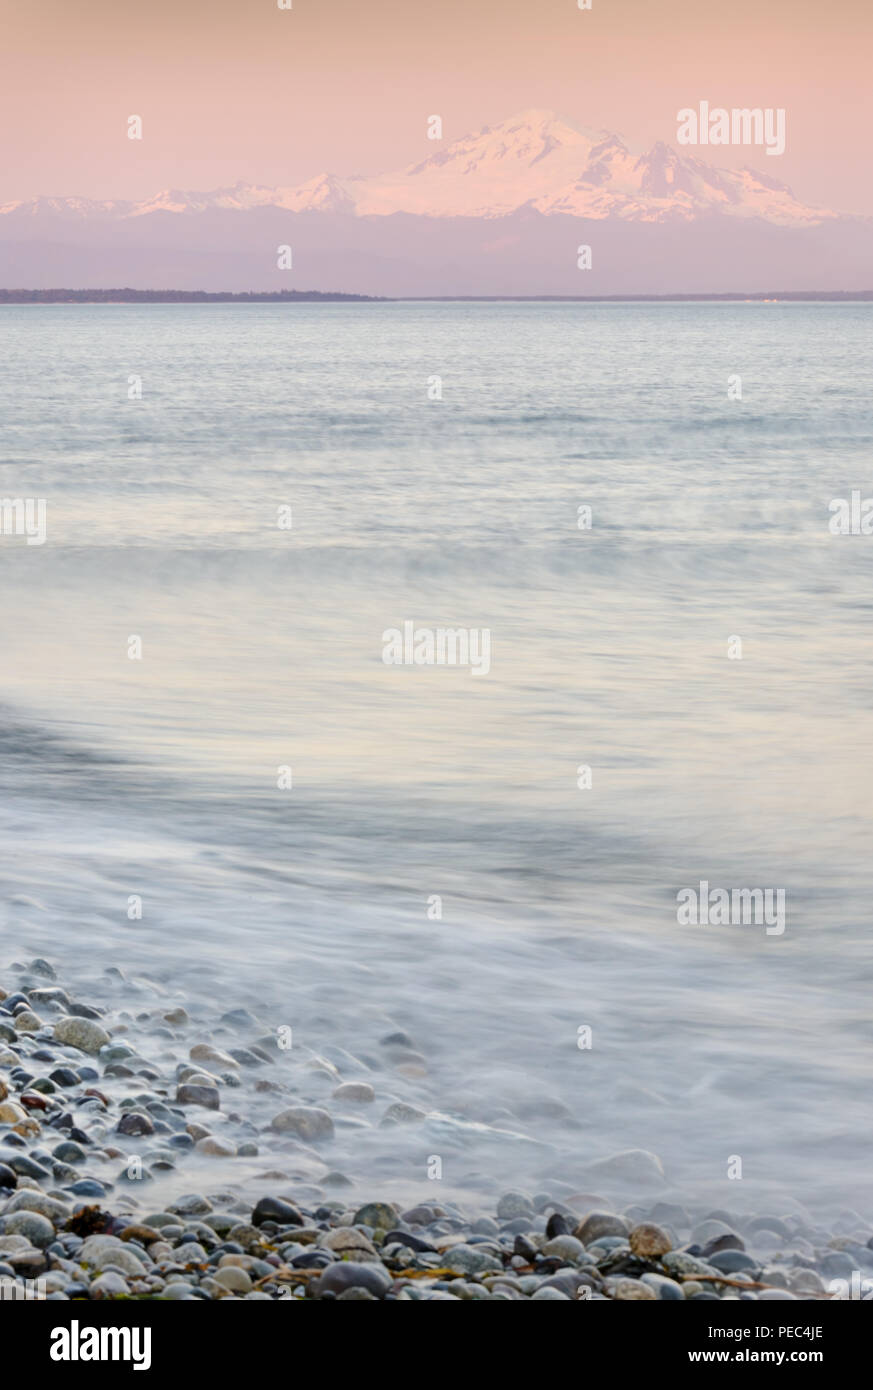 Mt Baker, Boundary Bay. The beach in Point Roberts, Washington State, looking out across Georgia Strait. USA. Stock Photo